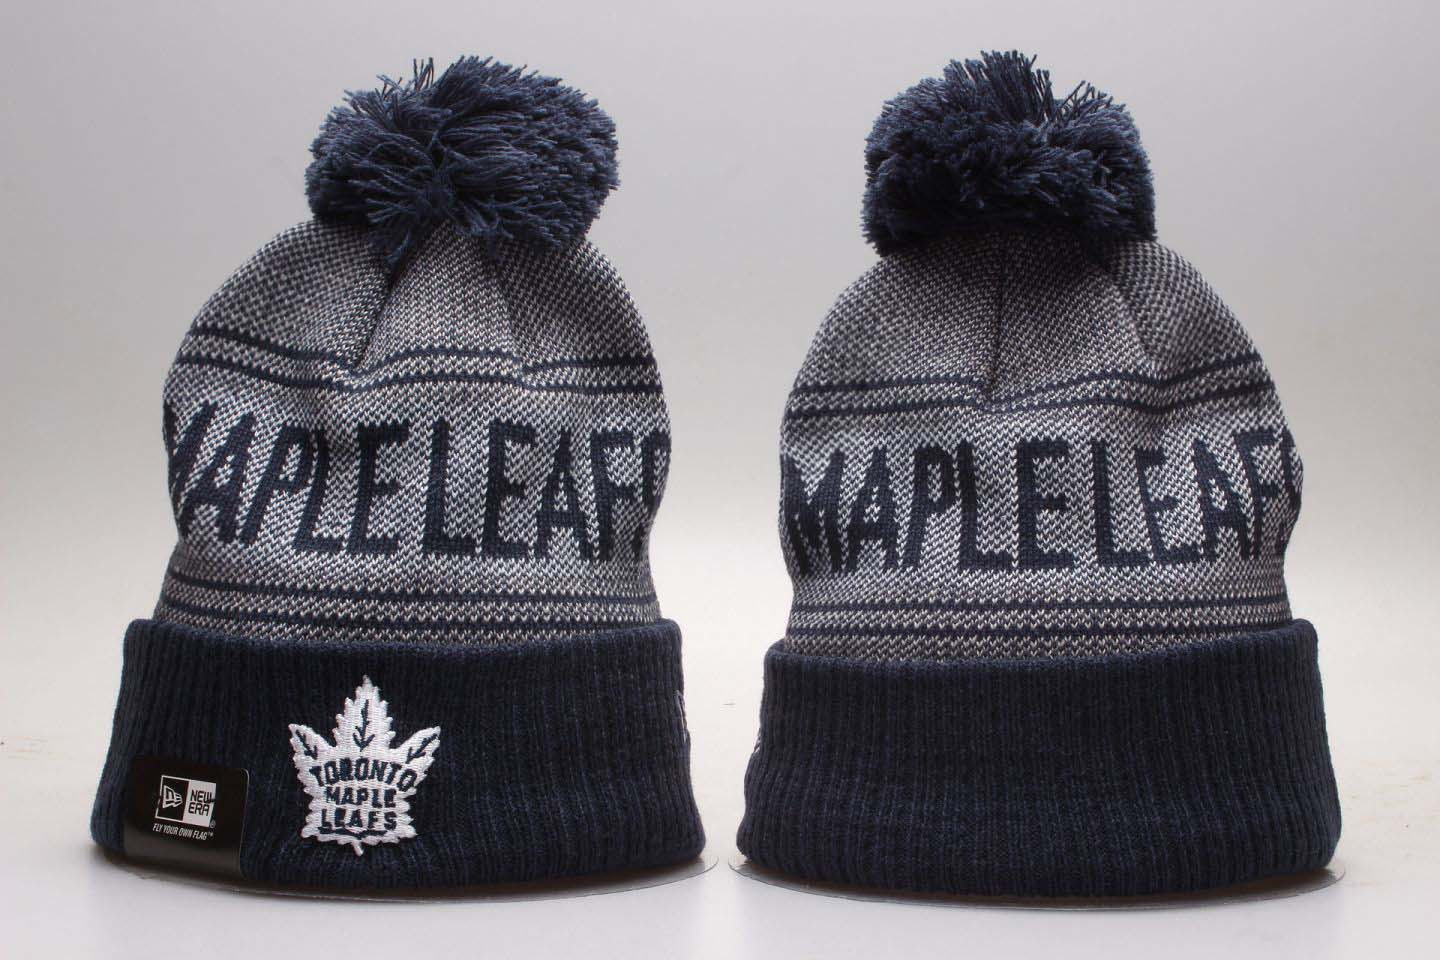 Wholesale 2020 NHL Toronto Maple Leafs Beanies 20